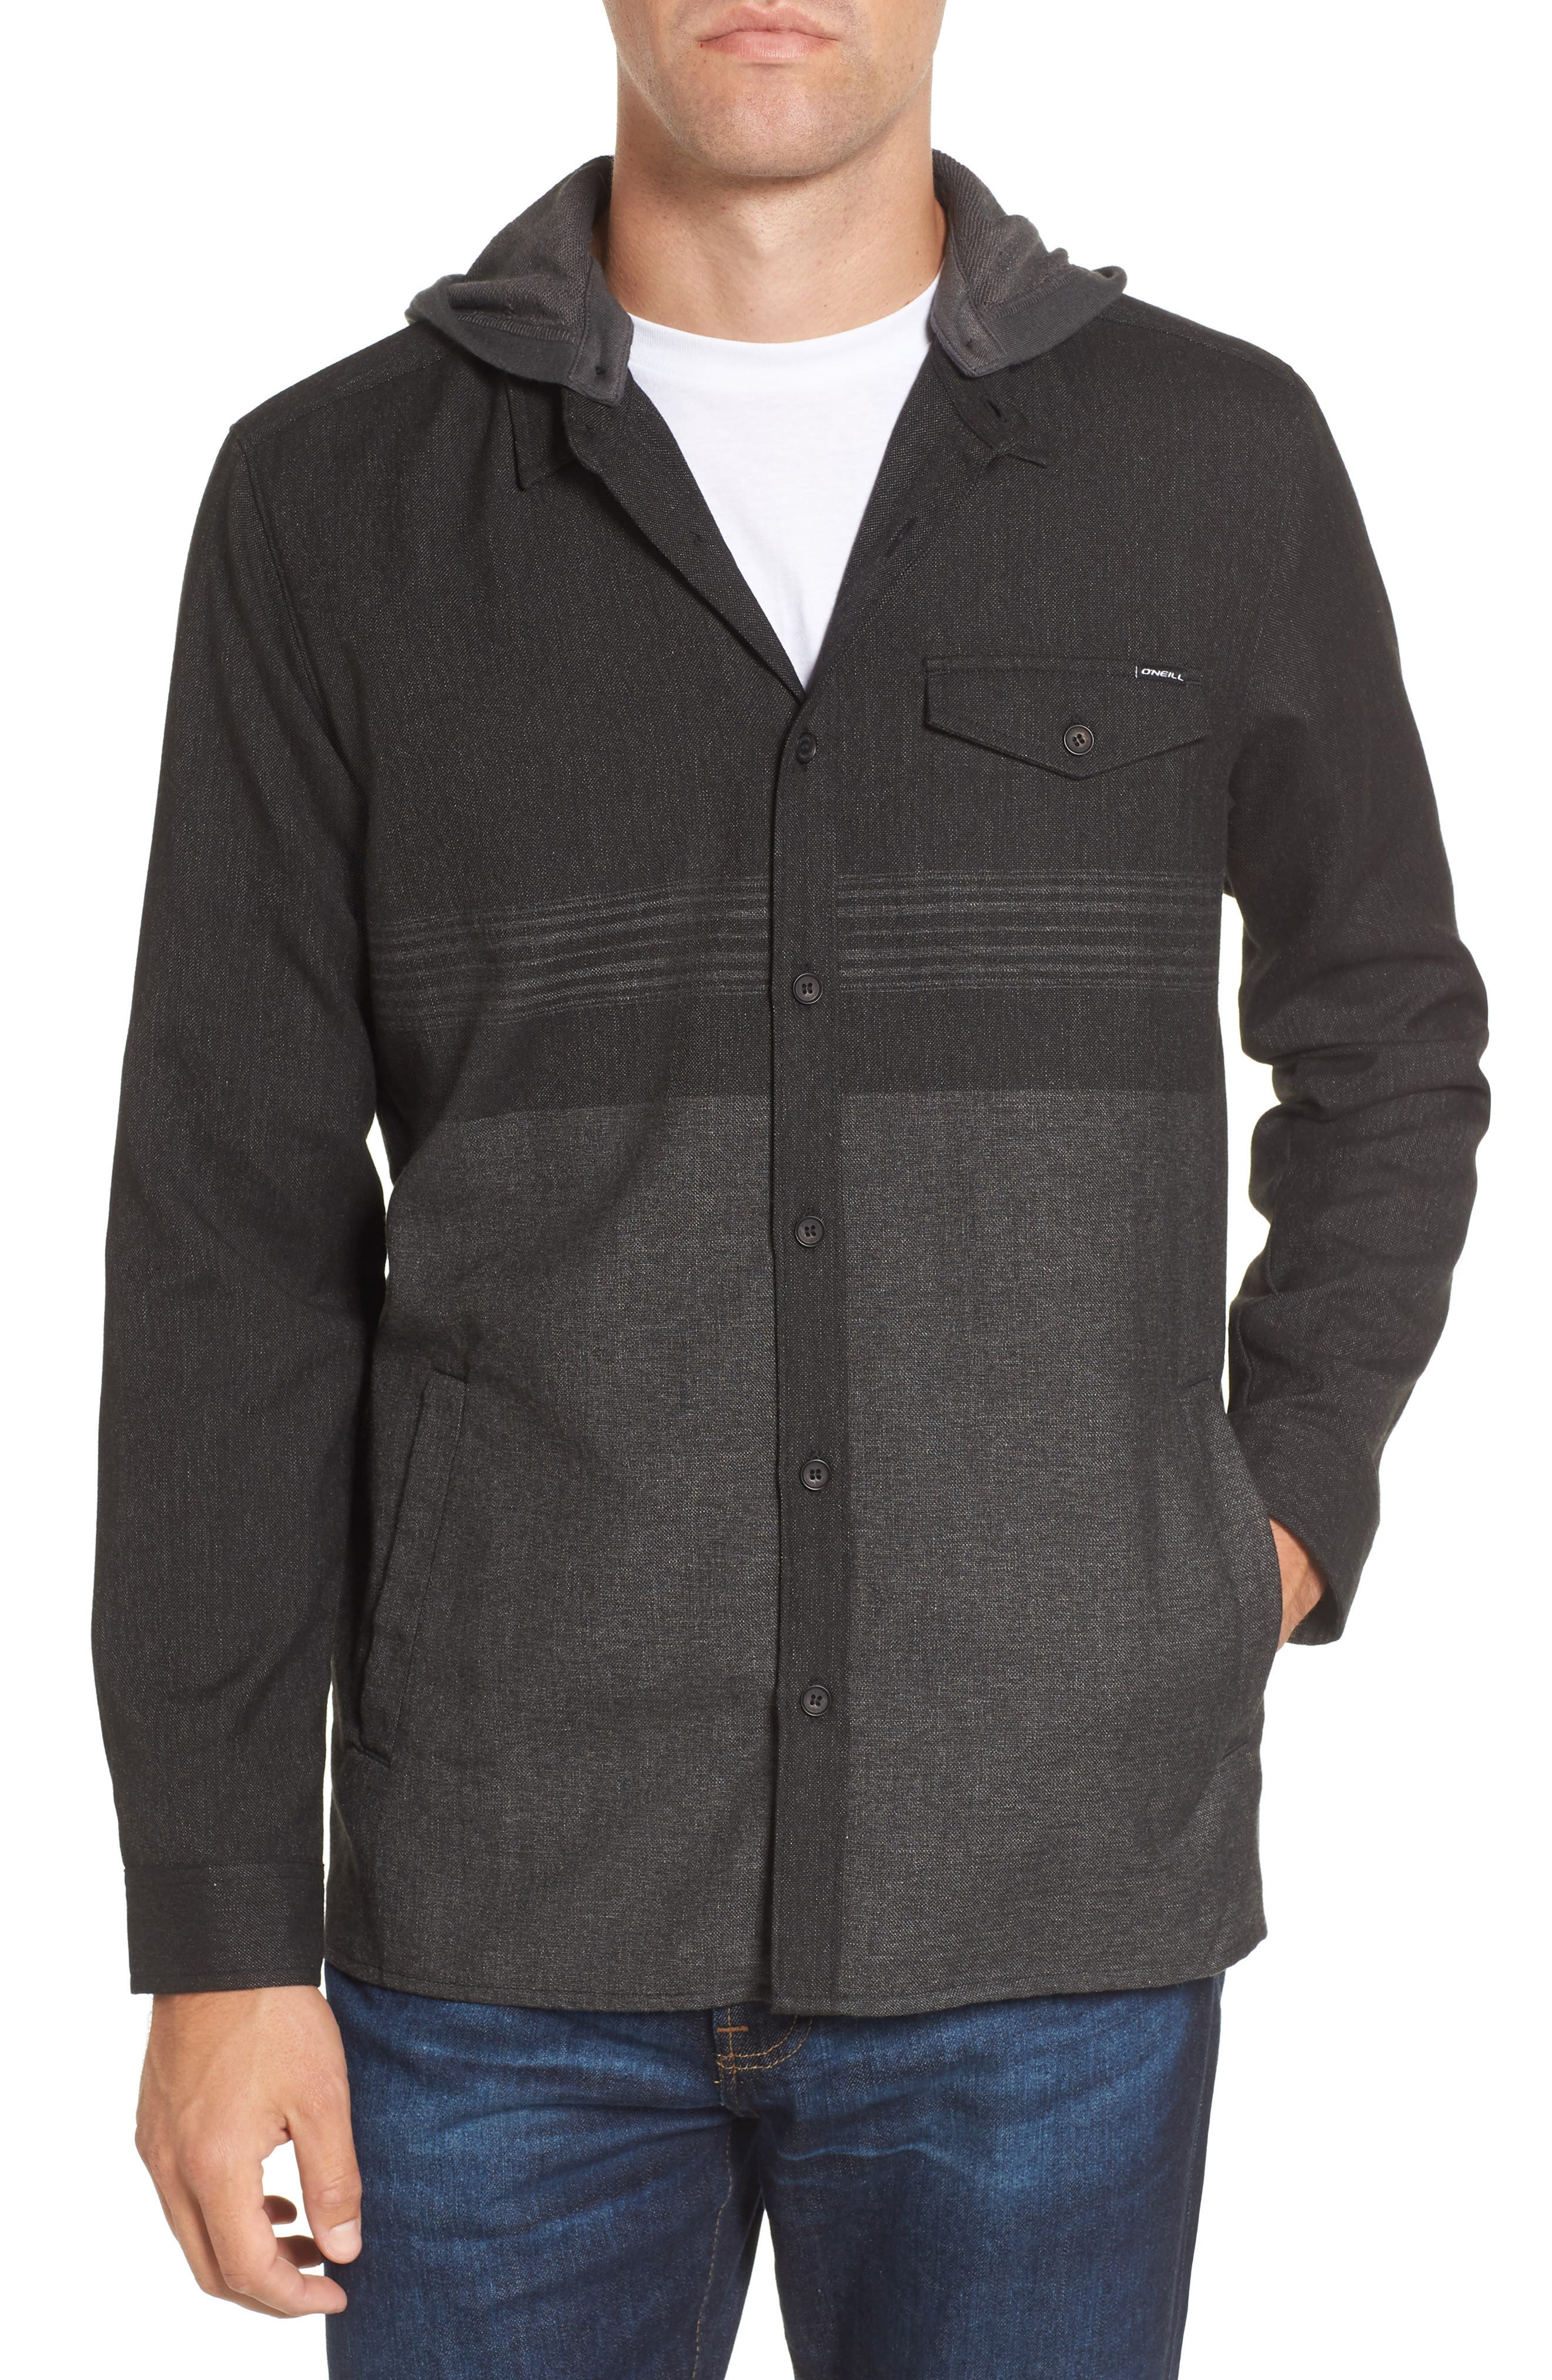 Alternate Image 1 Selected - O'Neill Jacinto Hooded Flannel Shirt